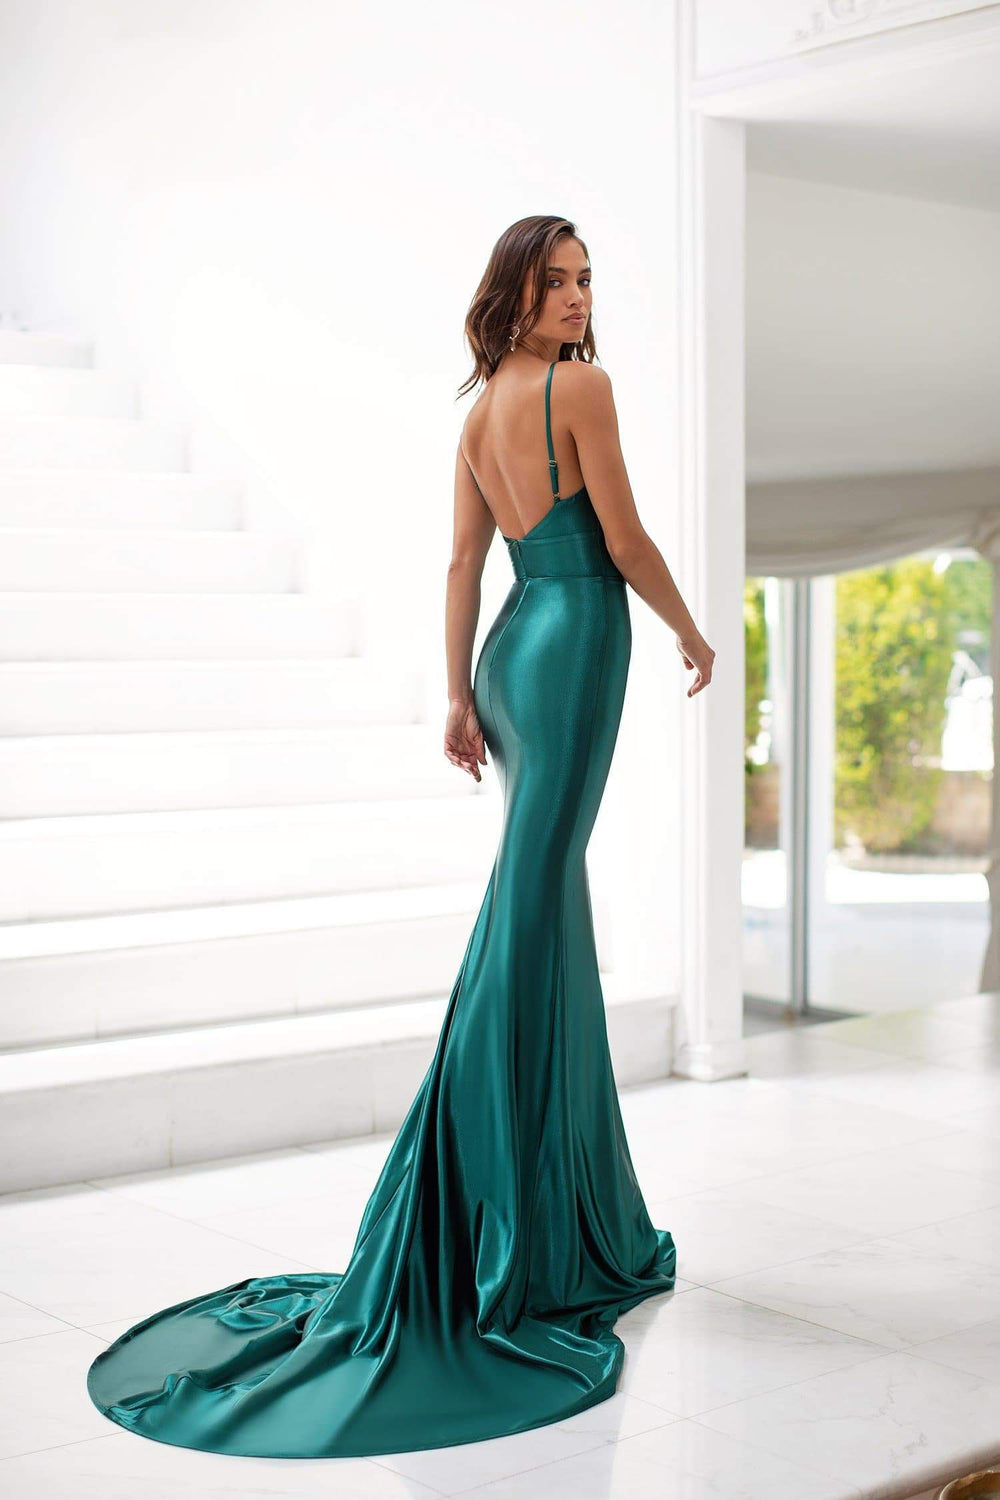 Martina - Emerald Satin Mermaid Gown with V-Neck & Adjustable Straps